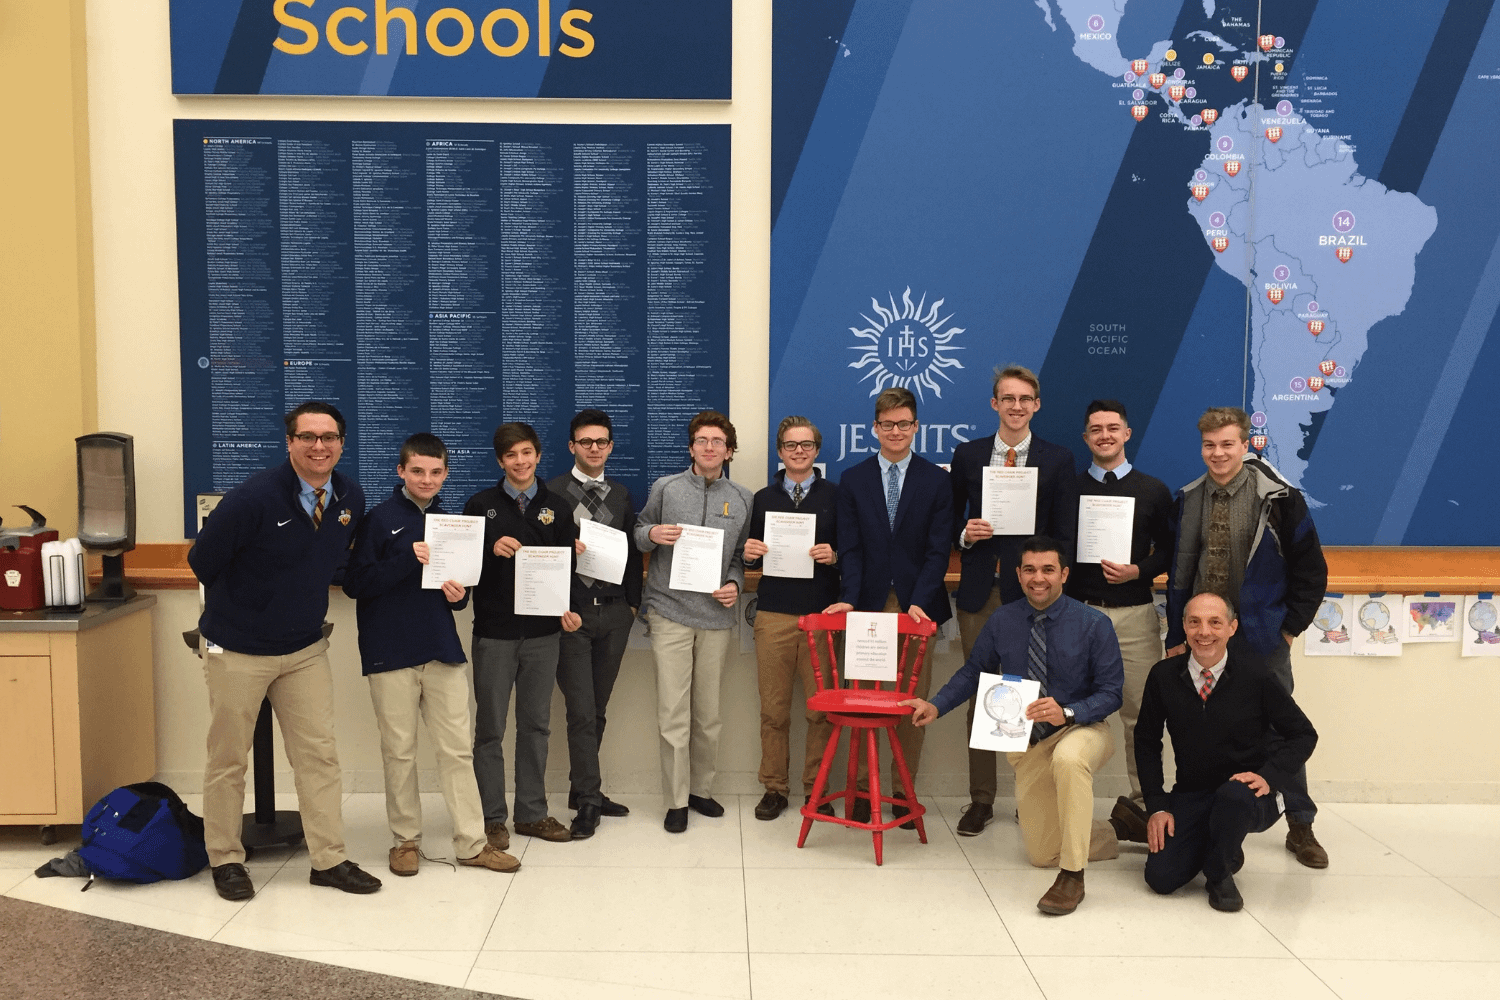 St. Ignatius High School in Cleveland participates in the Red Chair Project